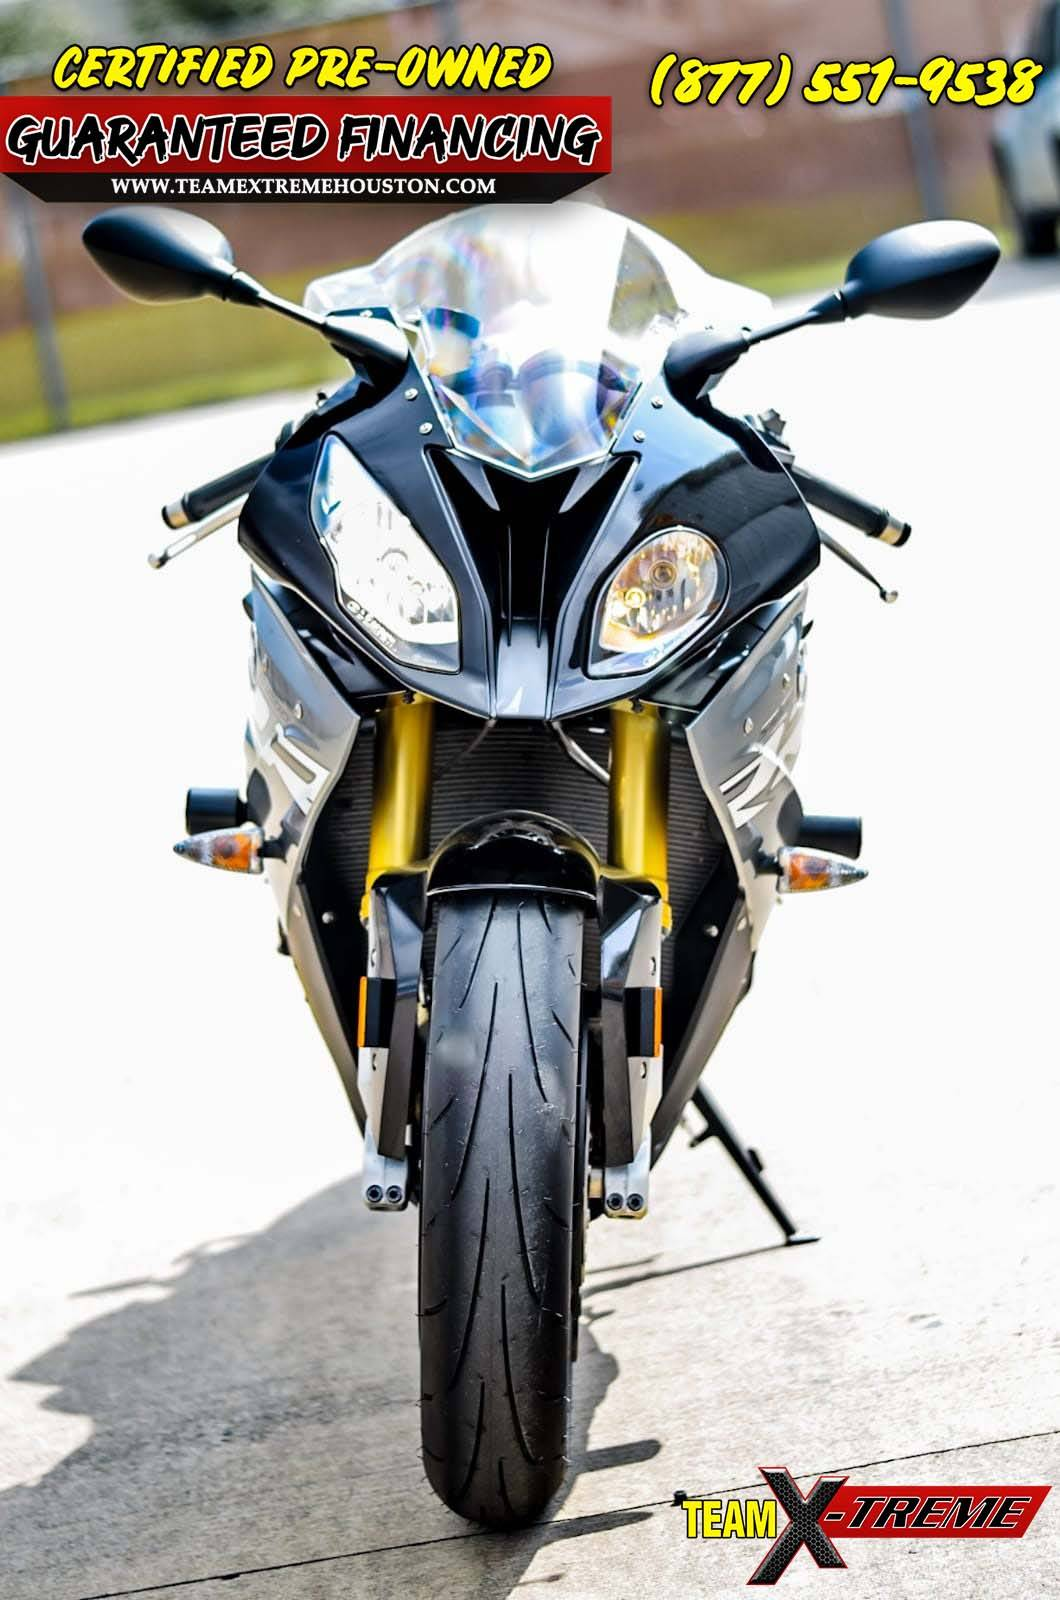 2018 BMW S 1000 RR in Houston, Texas - Photo 2